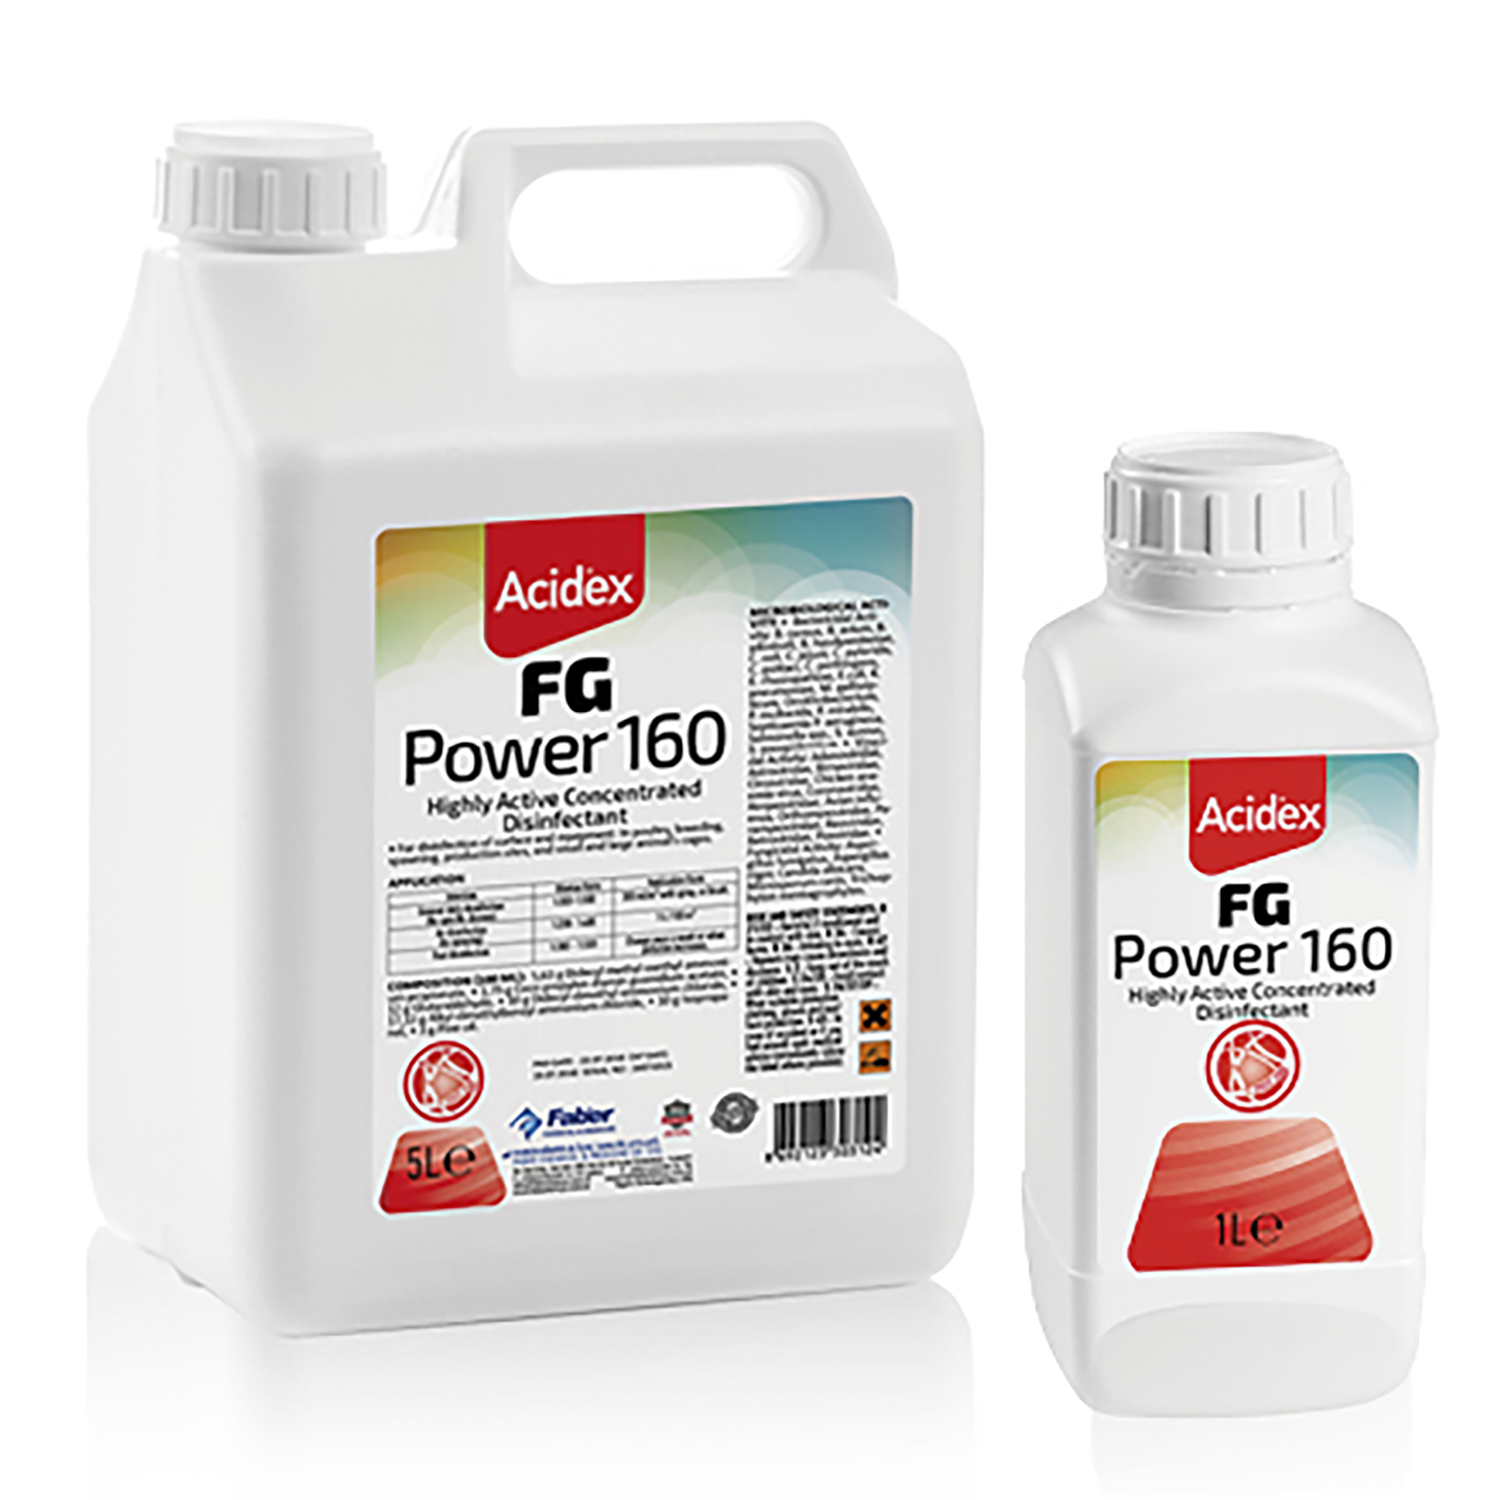 Acidex FG Power 160